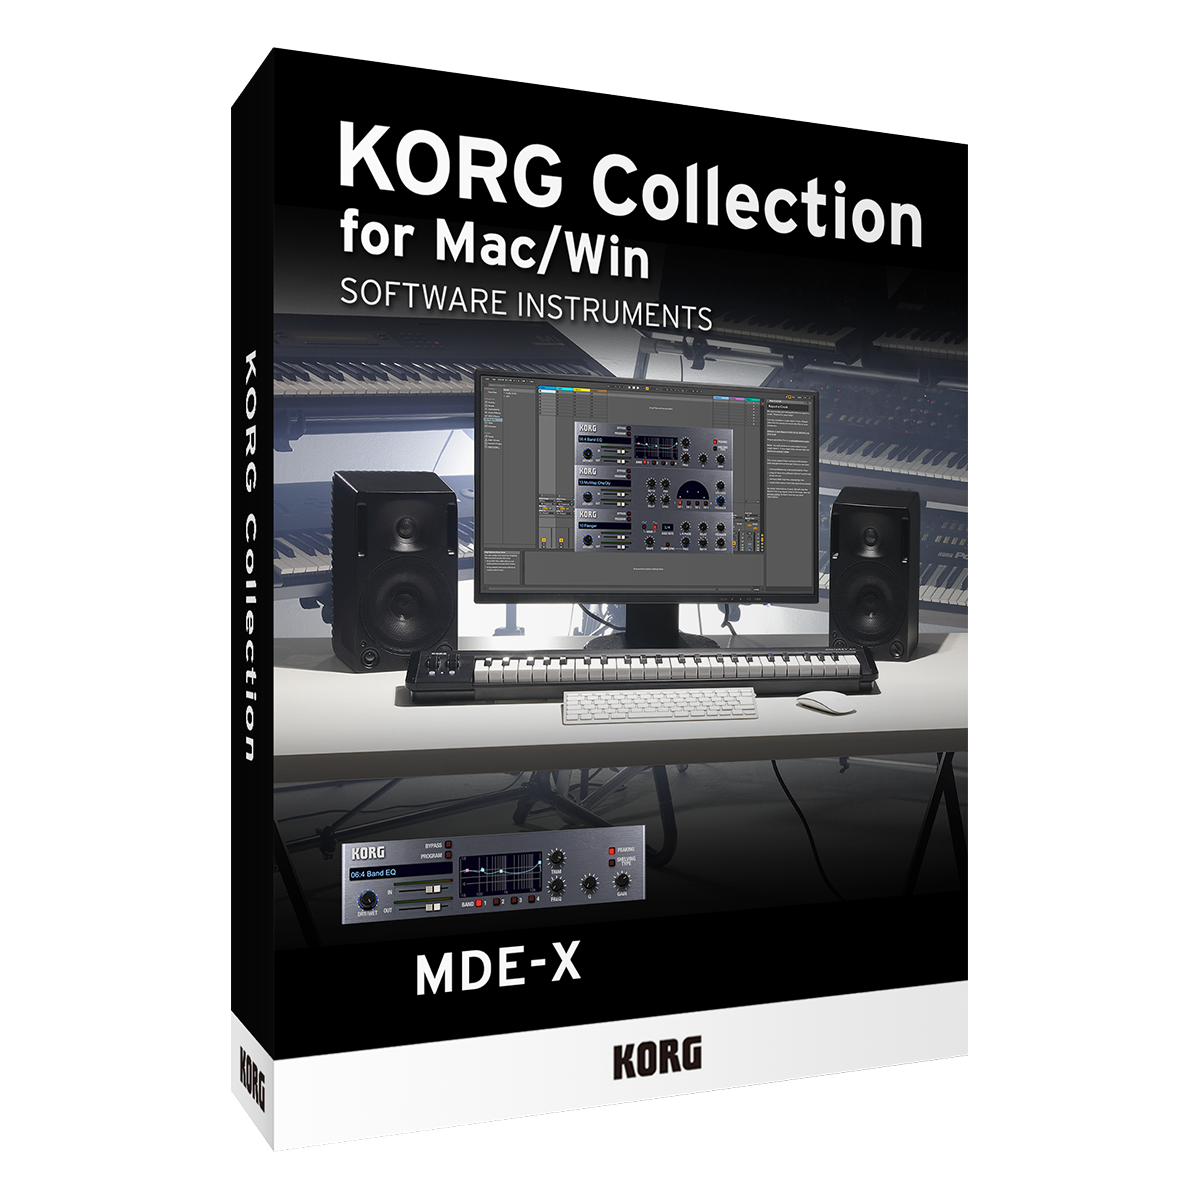 KORG Collection 3 - MDE-X